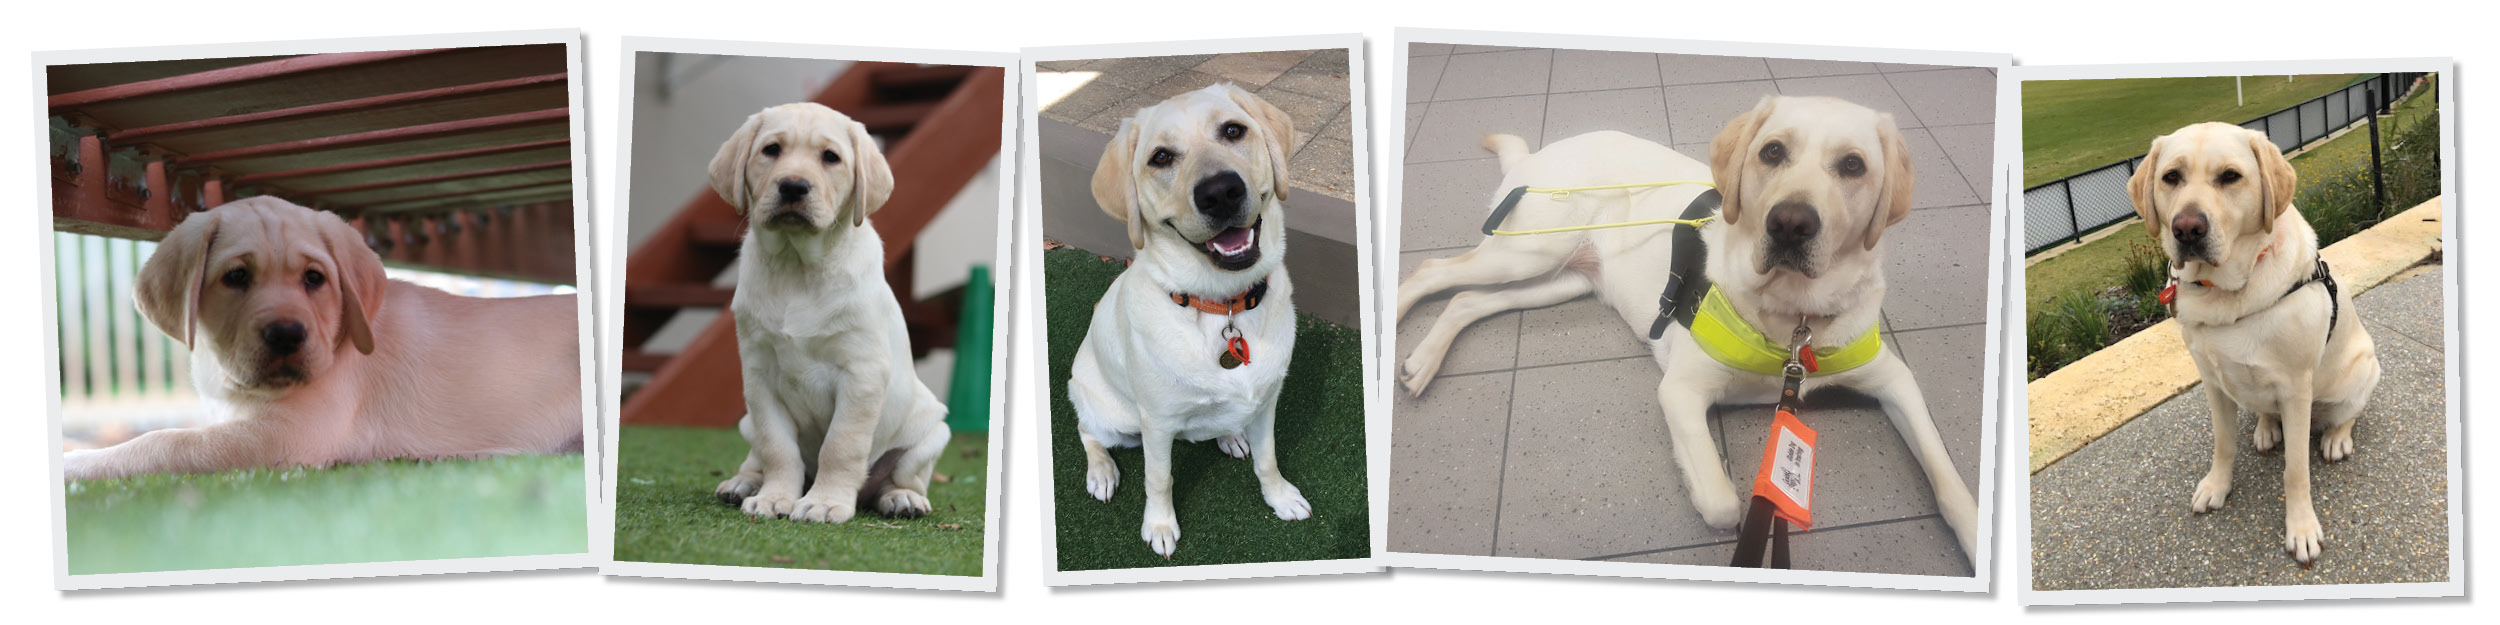 Montage of 5 photos of yellow labrador from 8 week old puppy to Guide Dog in brown harness